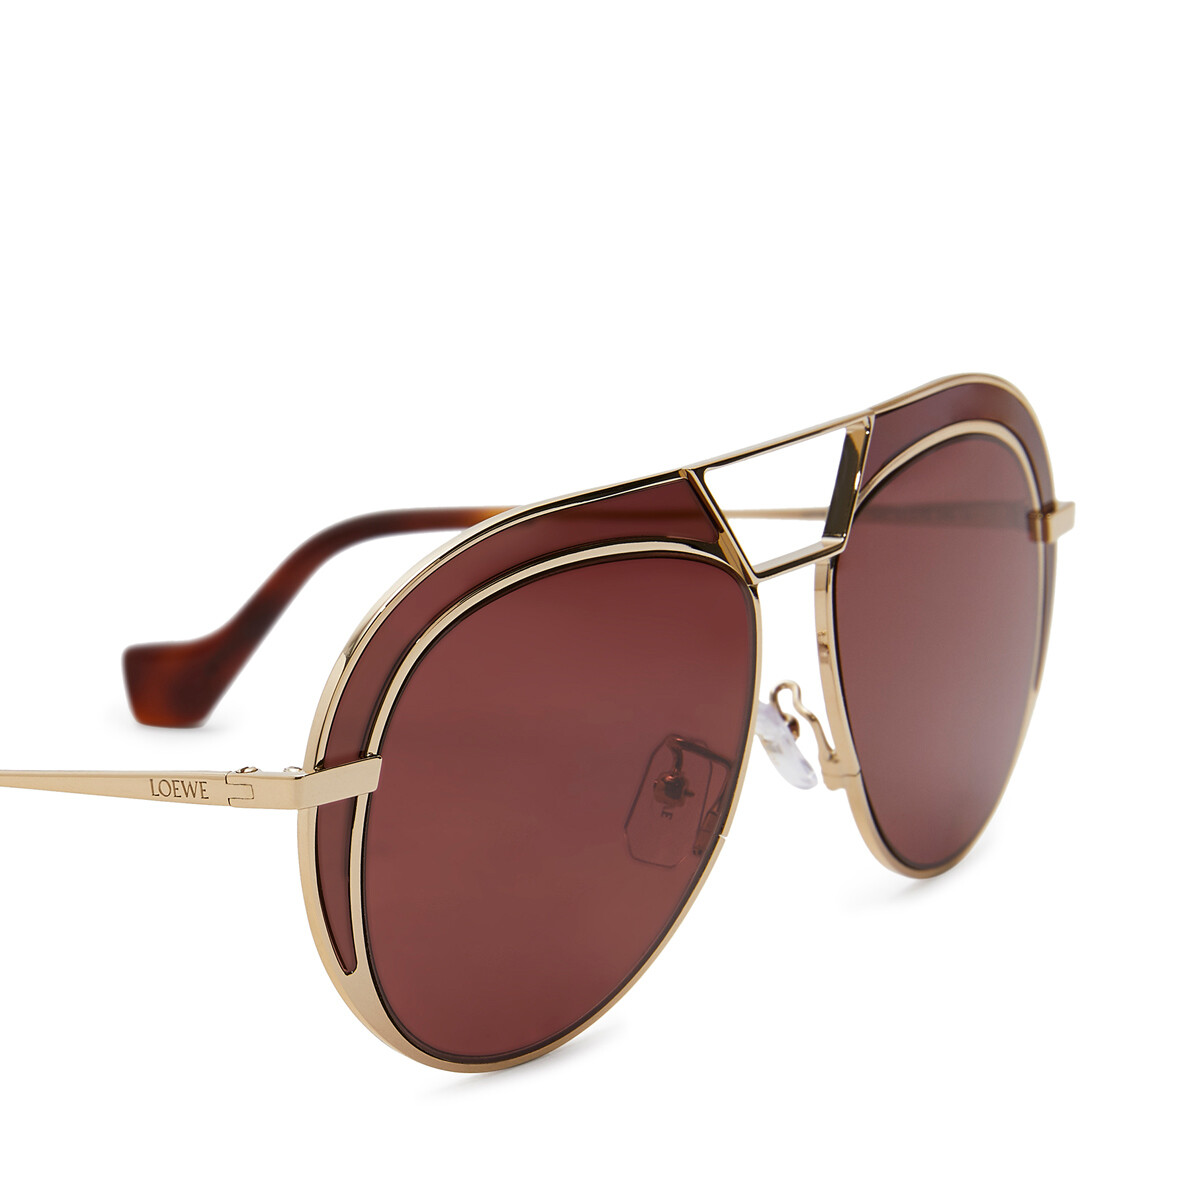 LOEWE Round Metal Sunglasses Gold/Burgundy front